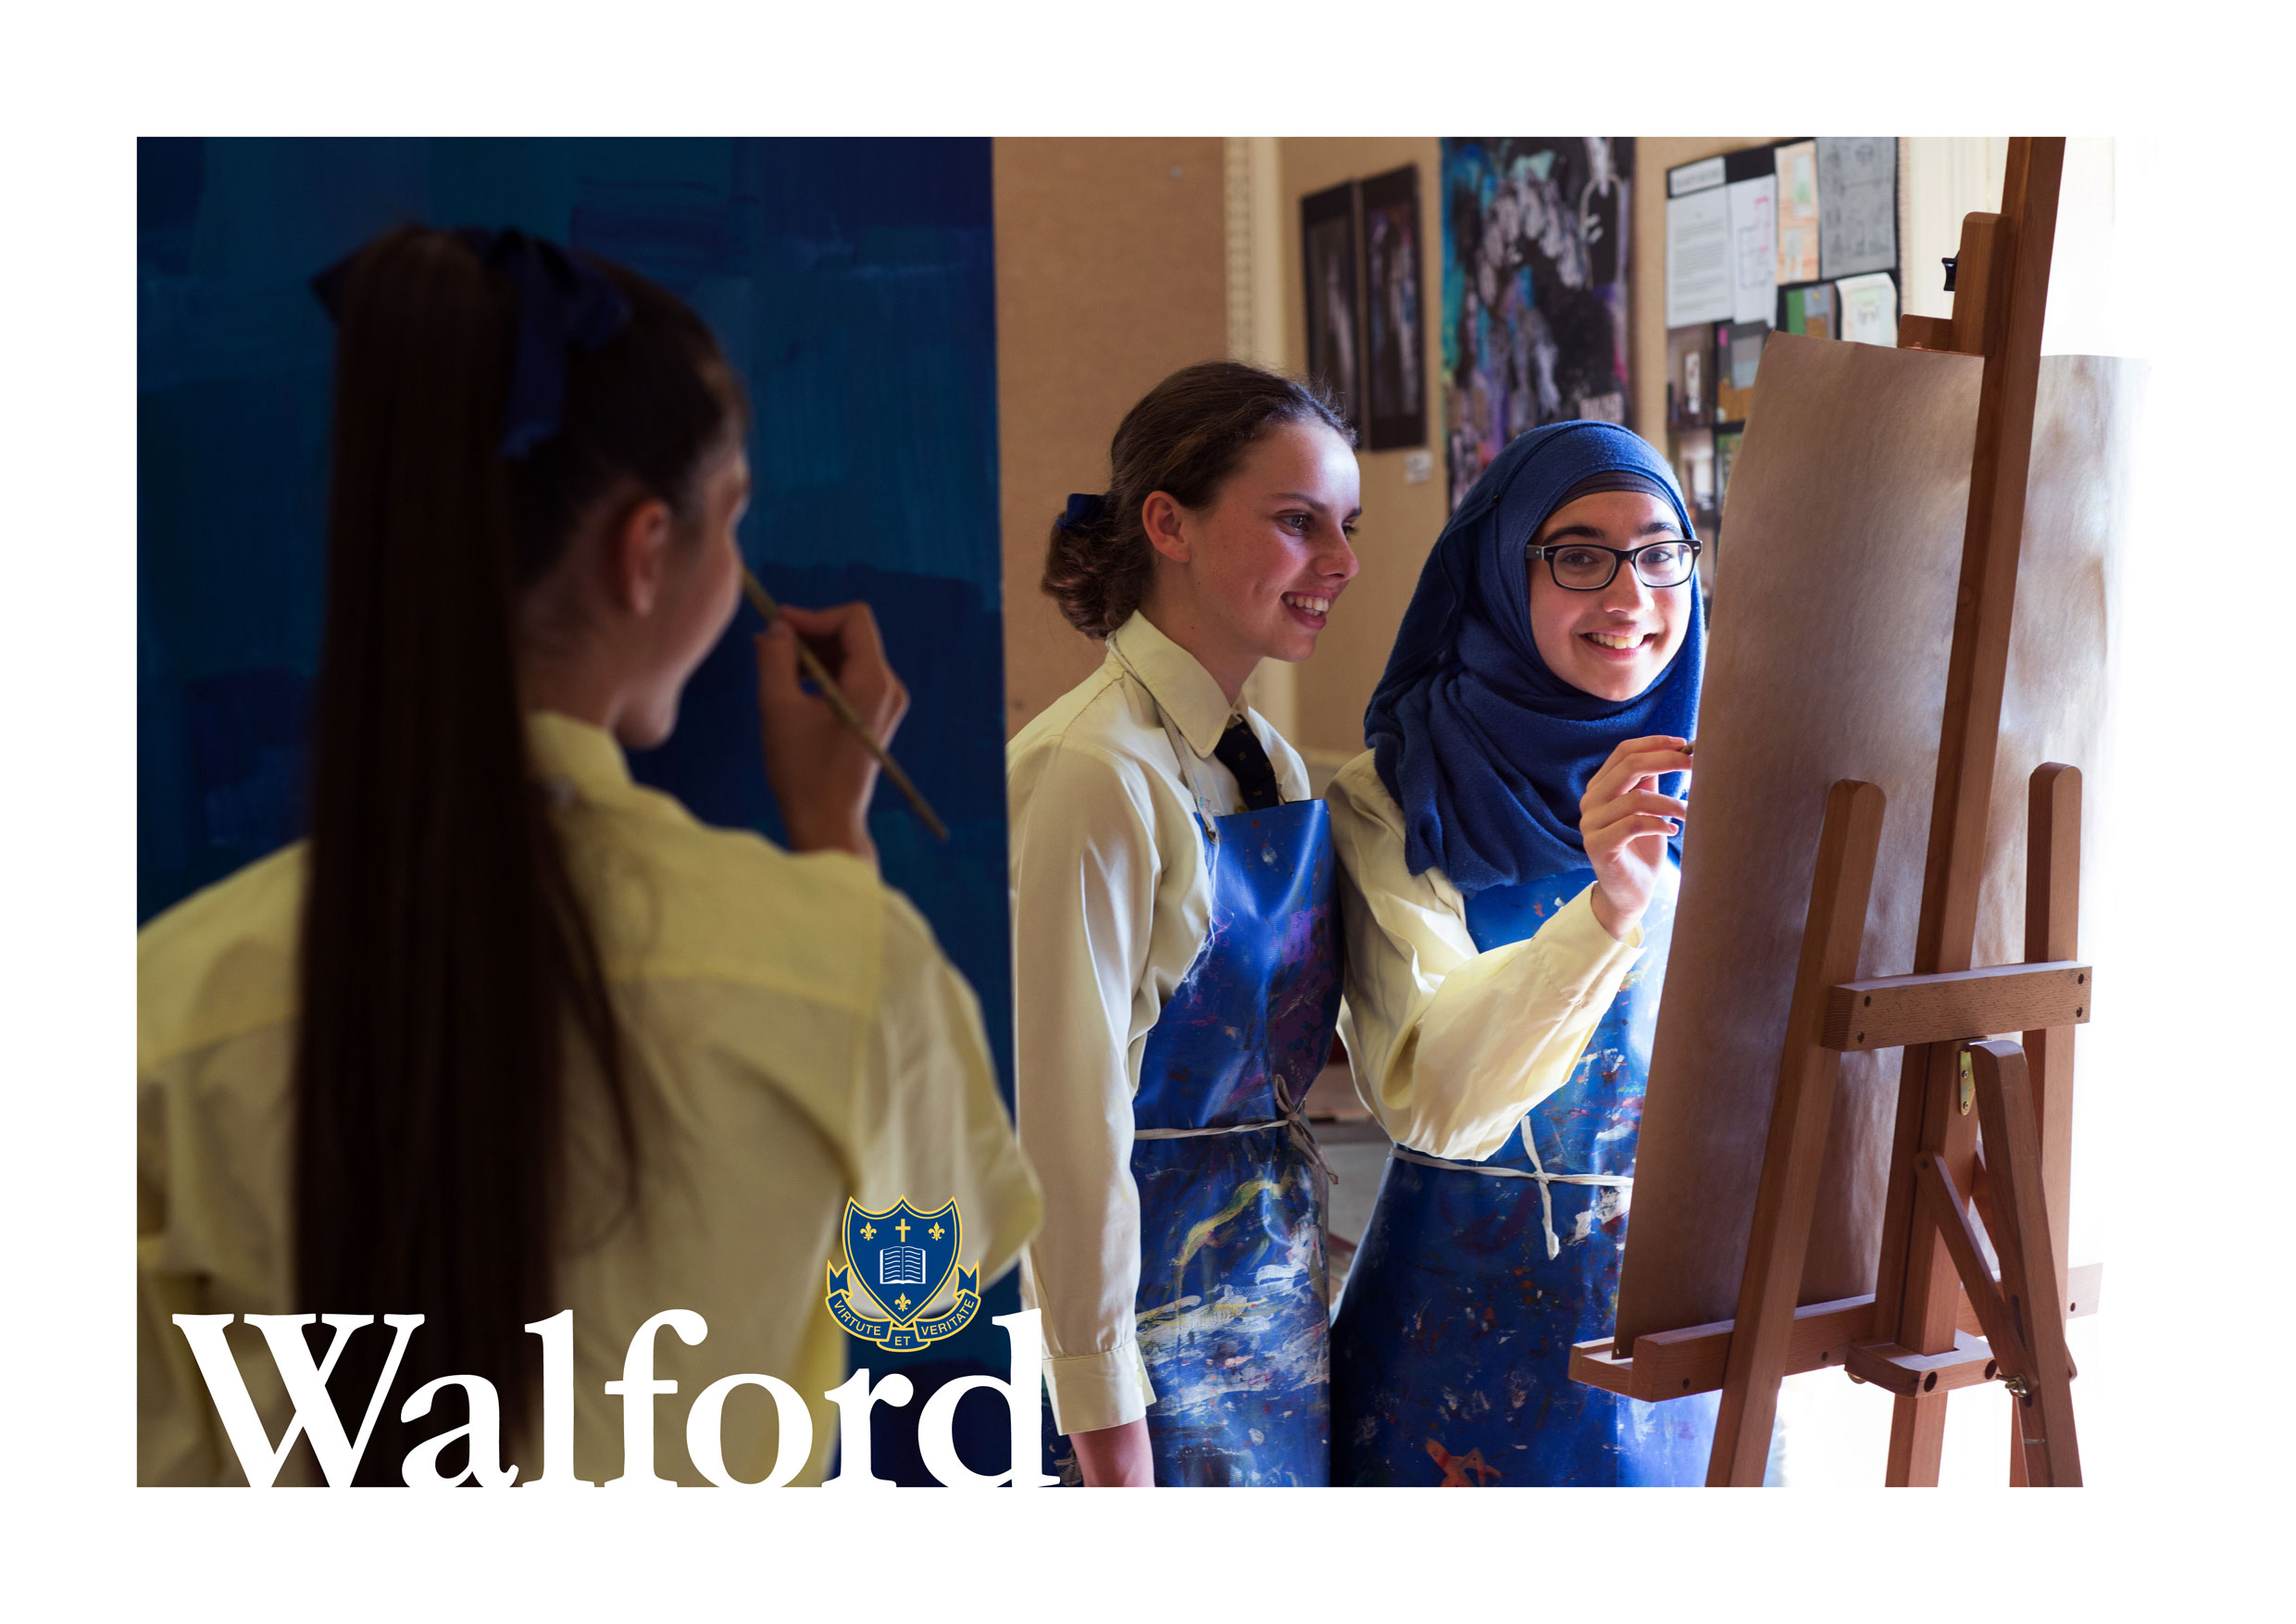 WALFORD-BRANDING-IMAGES_3